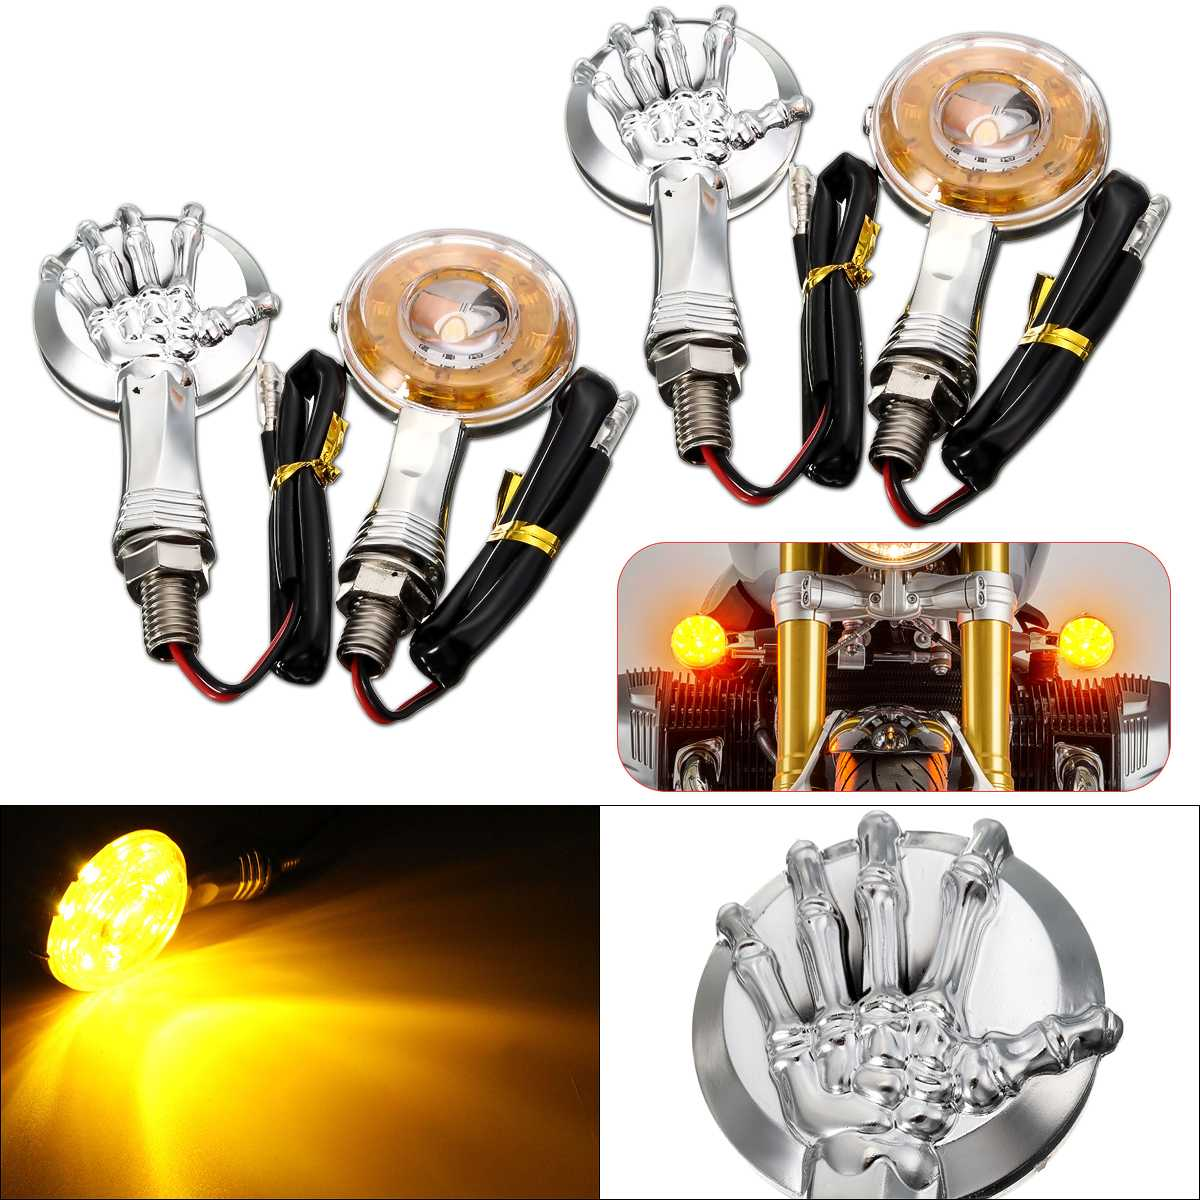 12V Chrome Skull LED Motorcycle Turn Signal Lights Indicator Lamp For Davidson Dyna Softail Sportster 883 Street Glide